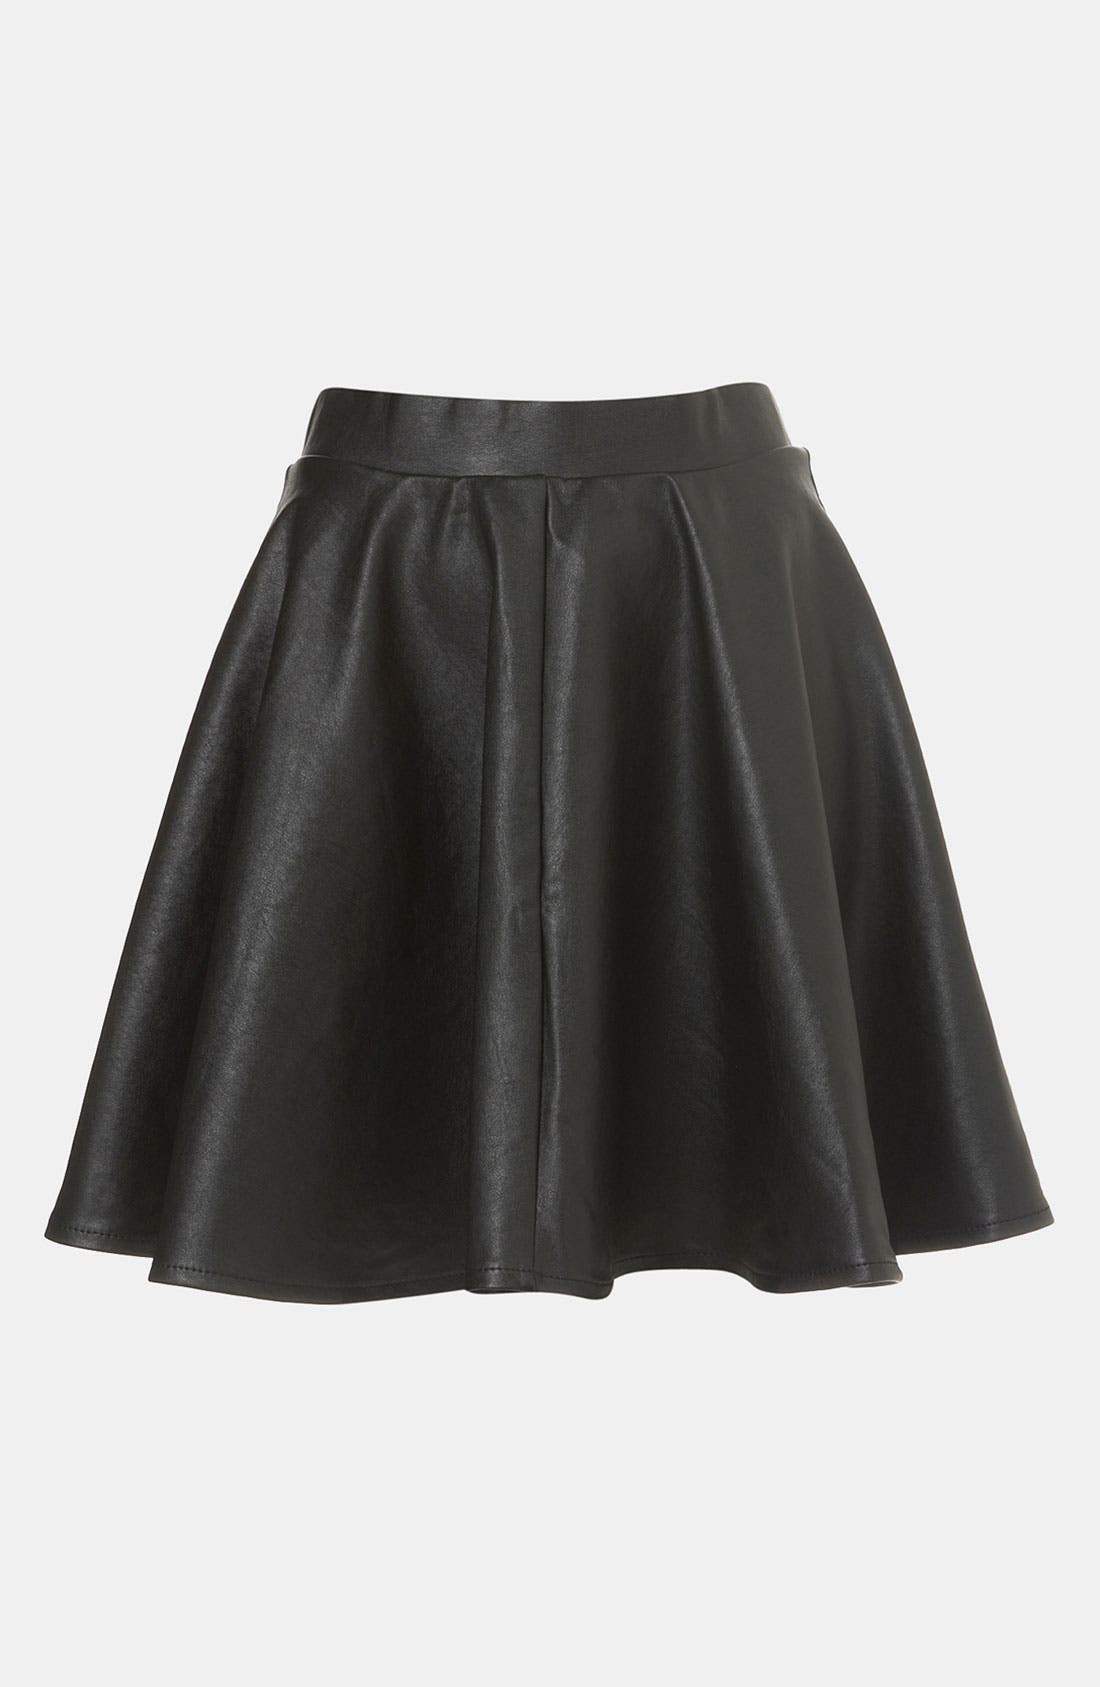 TOPSHOP,                             'Andie' Faux Leather Skater Skirt,                             Main thumbnail 1, color,                             001